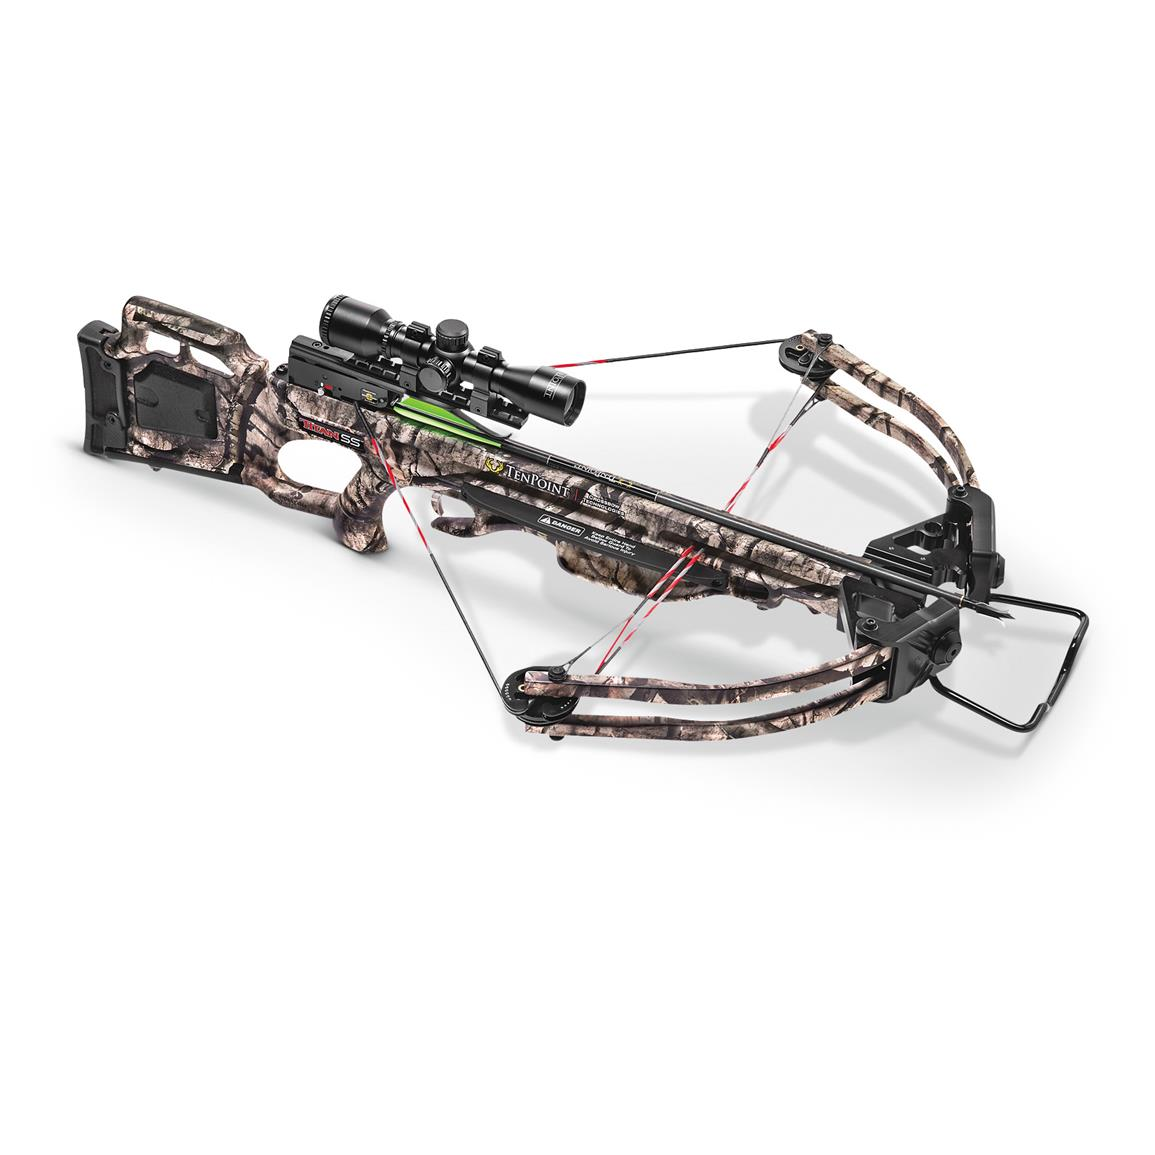 TenPoint Titan SS Crossbow with 3x Pro-View 2 Scope